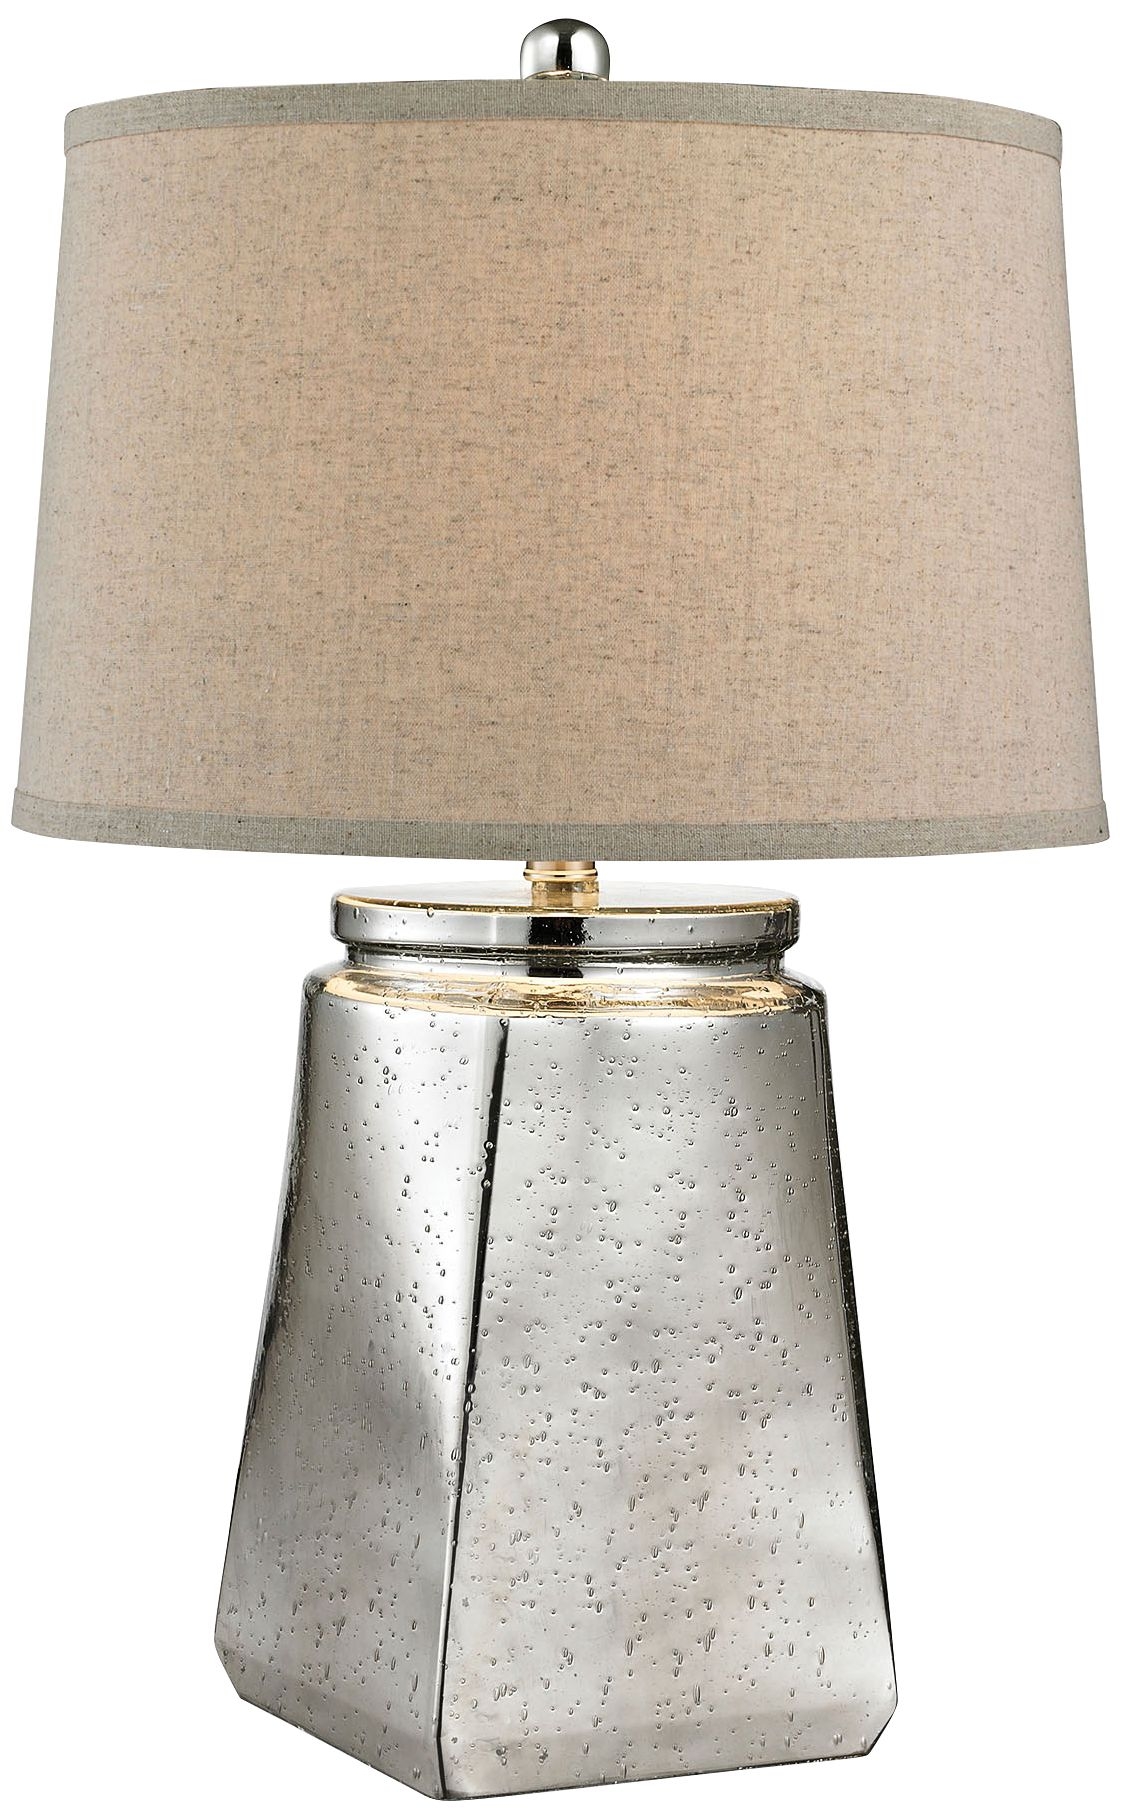 Leds-C4 Ocho Light Online Price Cheap Riya Tapered Square Silver Mercury Glass Table Lamp